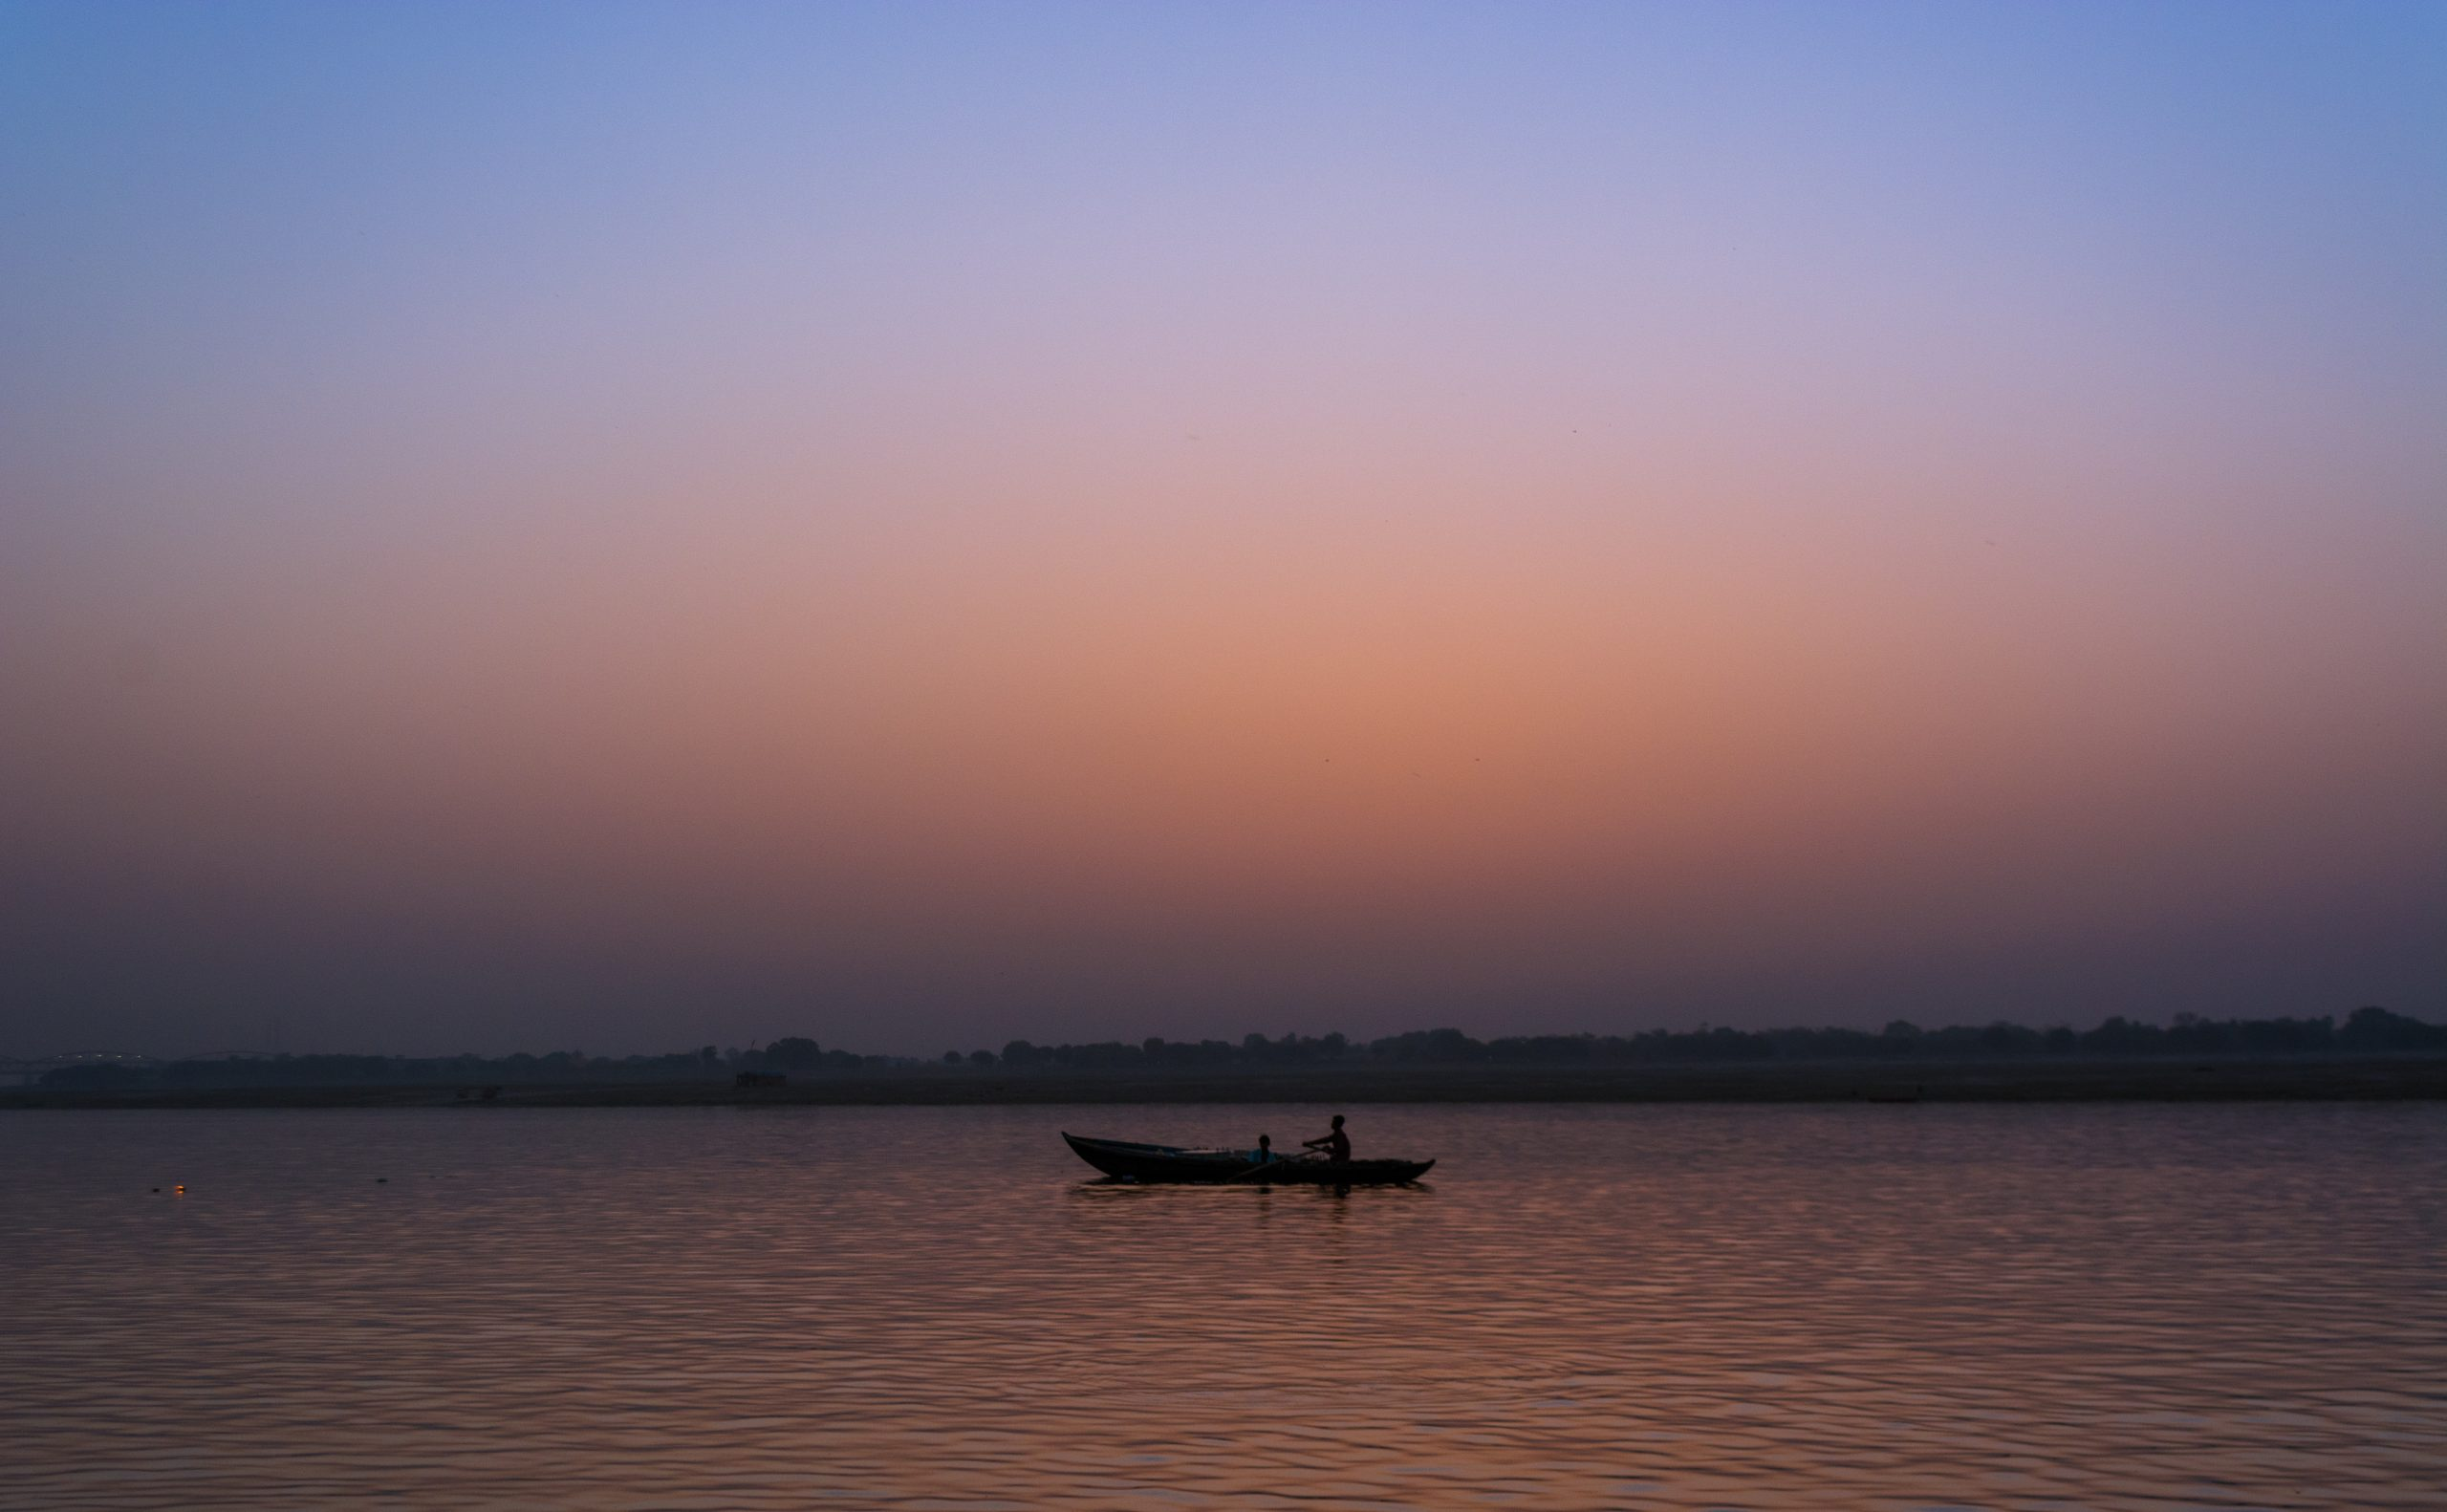 boat in the river at sunrise